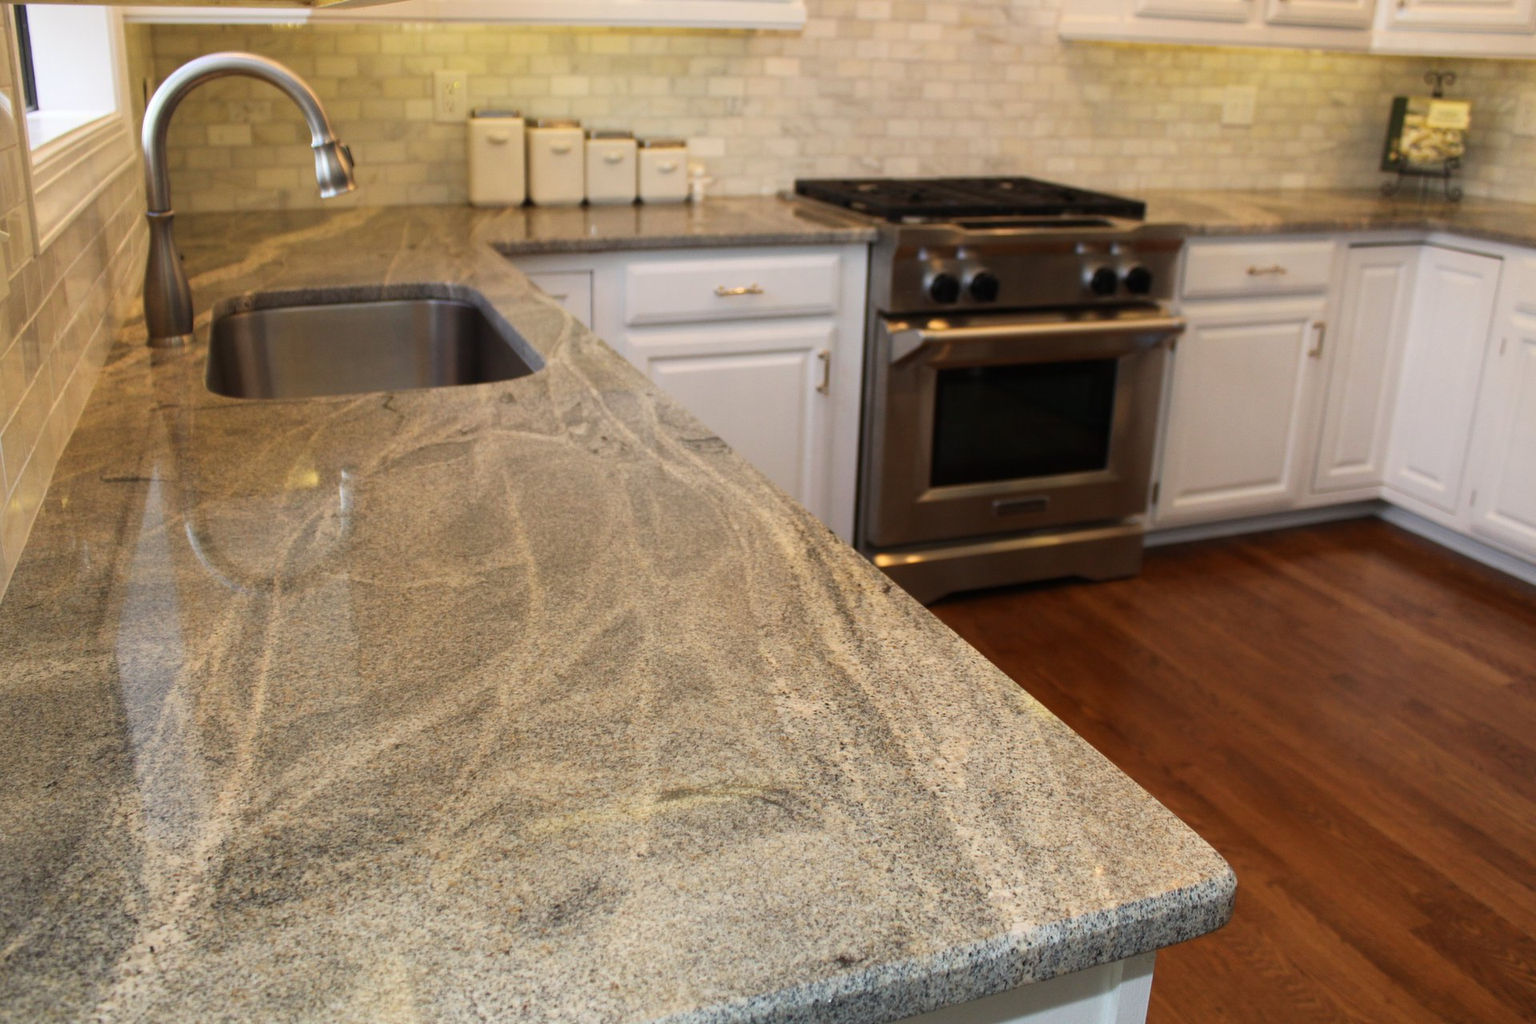 Mocha Kitchen Cabinets Granite Marble Engineered Stone Countertops Wix Com